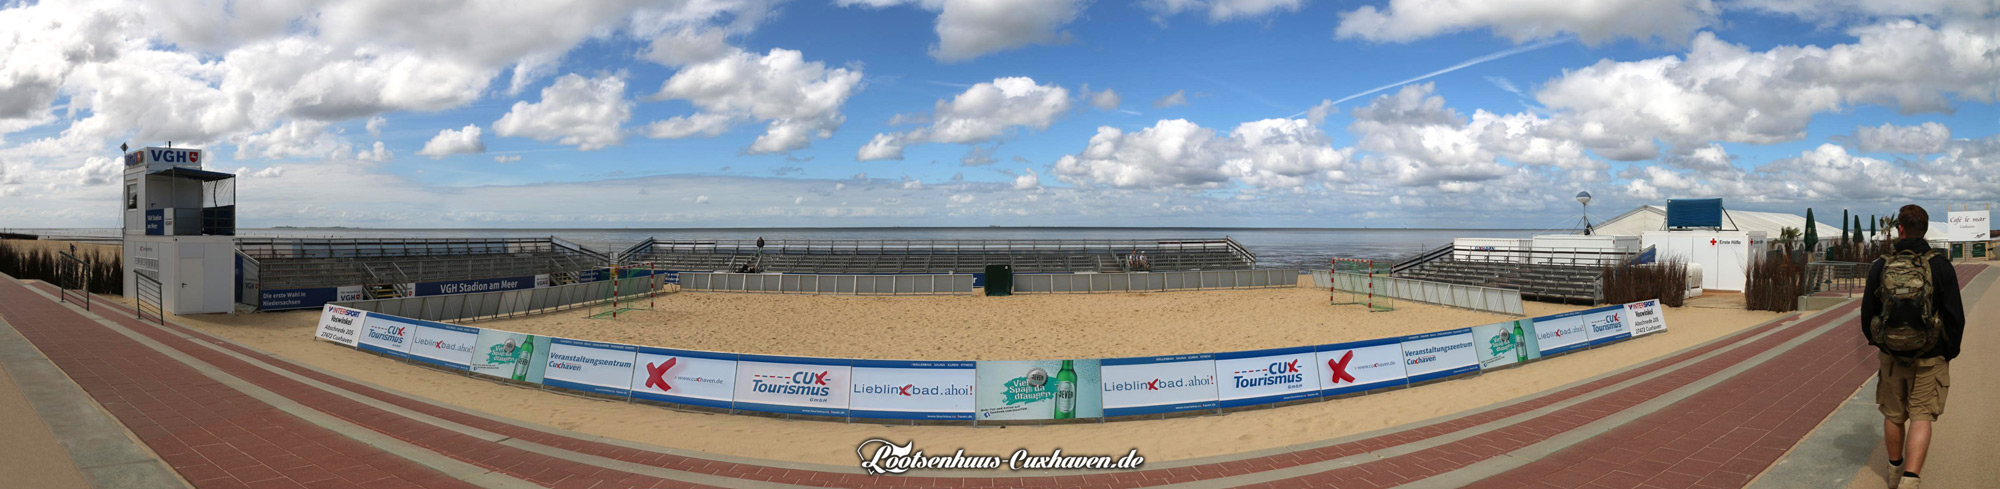 Panoramafoto vom Stadion am Meer in Cuxhaven